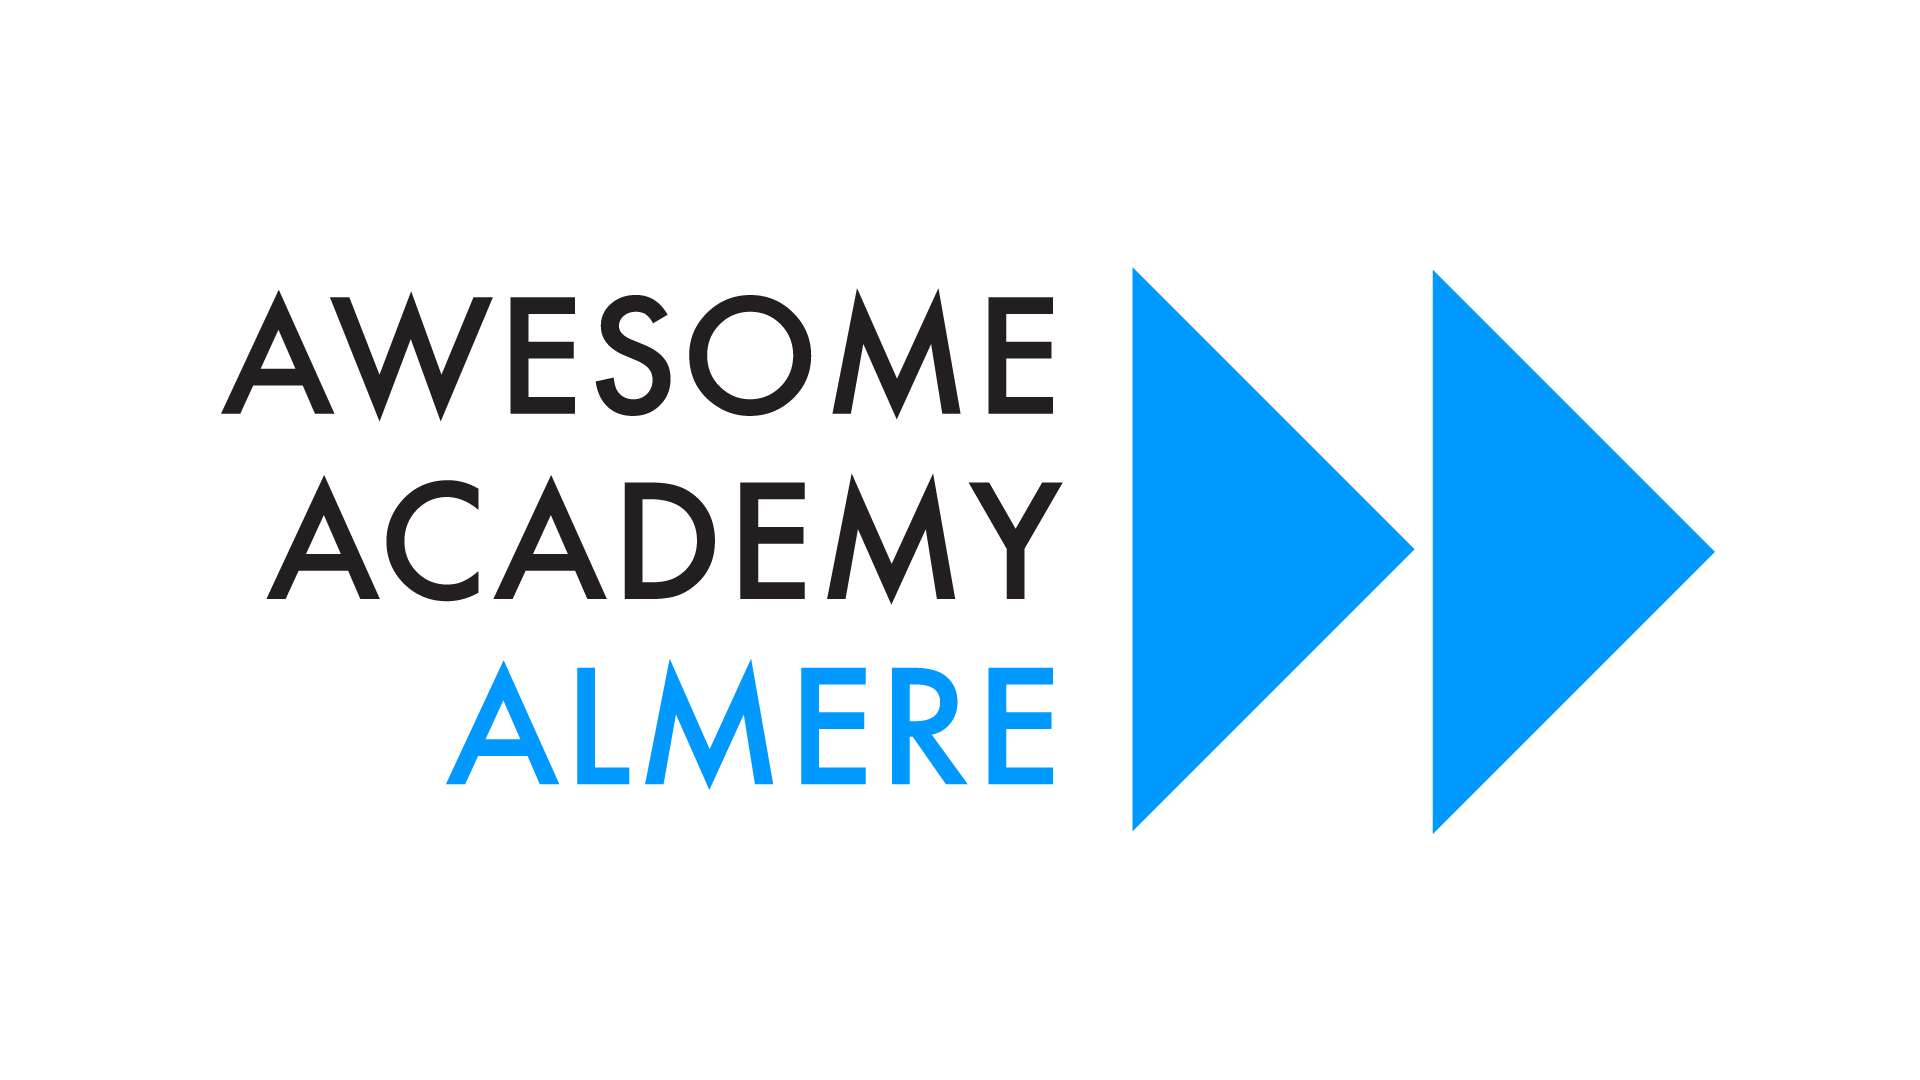 Awesome Academy 3